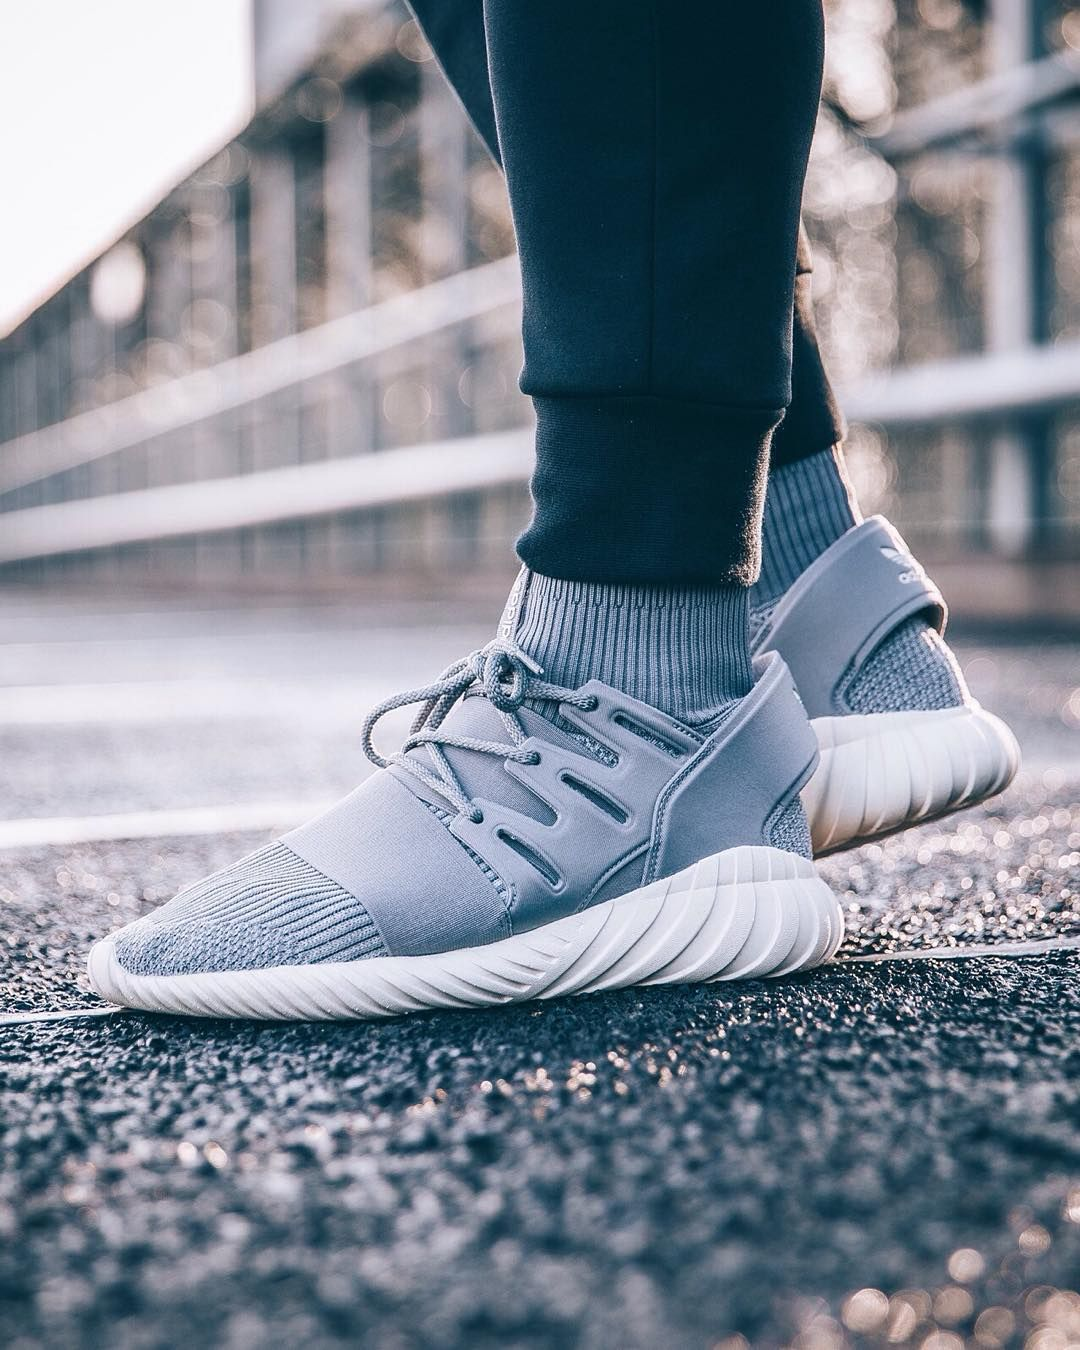 Adidas Tubular Runner Purple